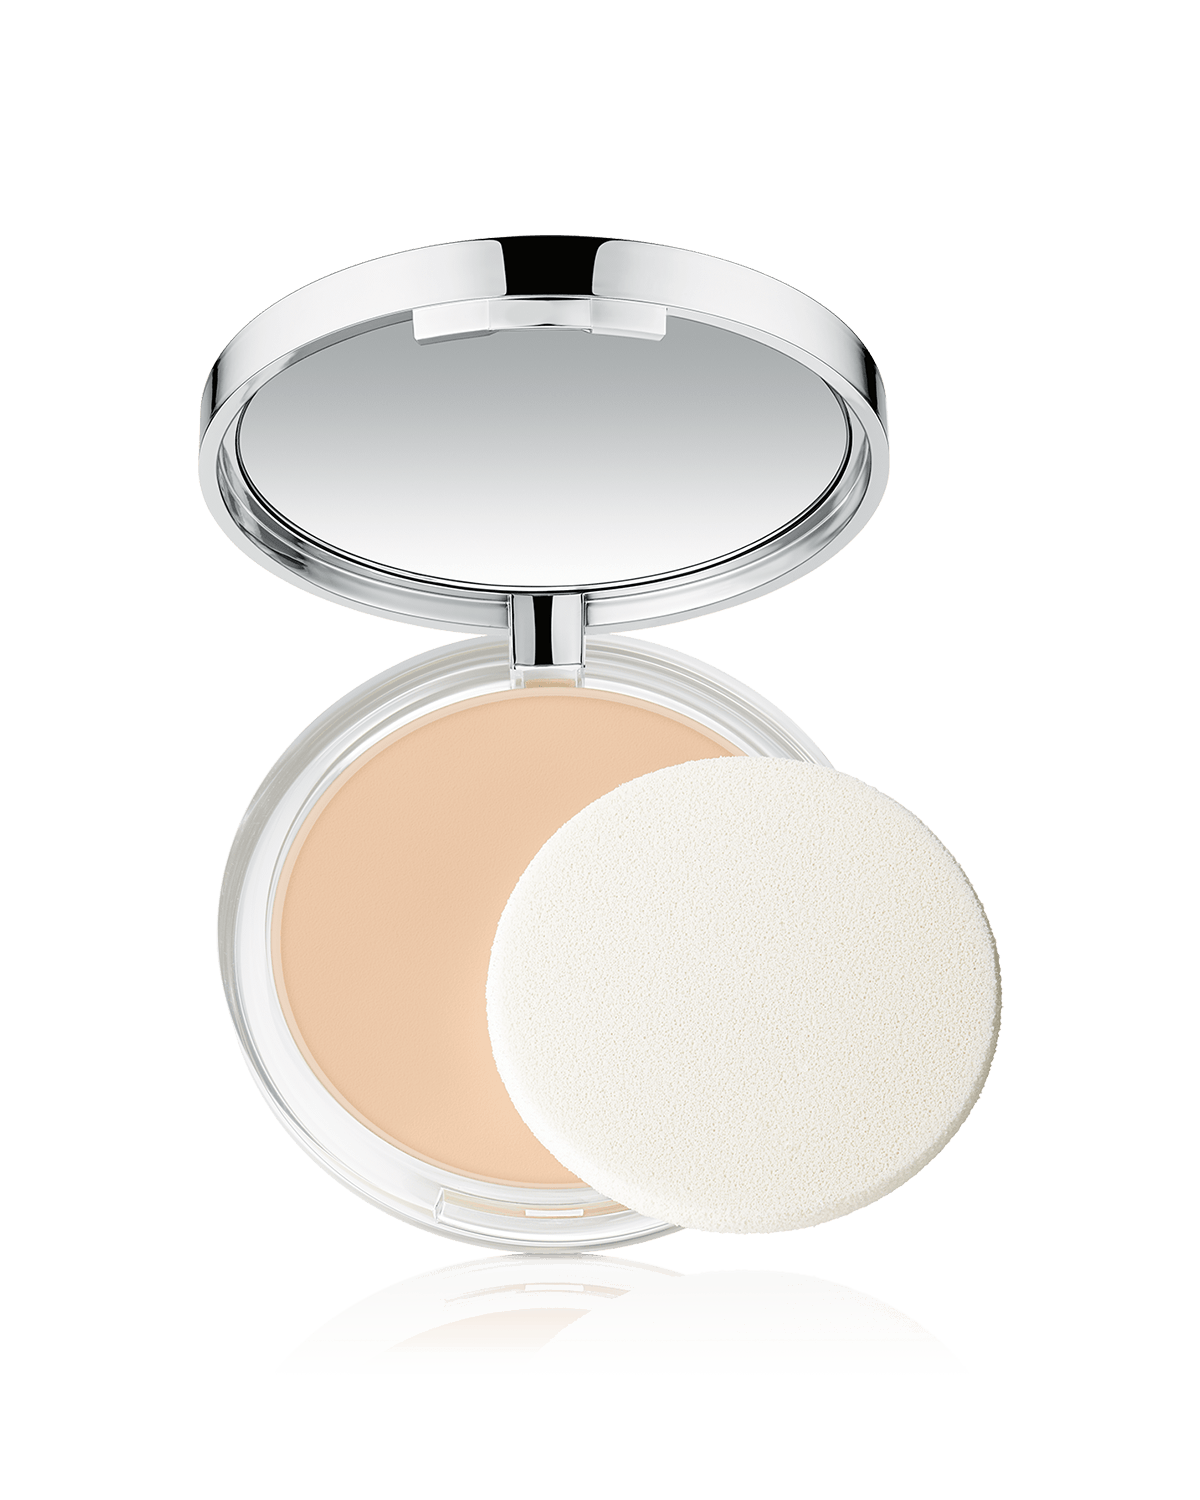 Almost Powder Makeup Broad Spectrum SPF 18